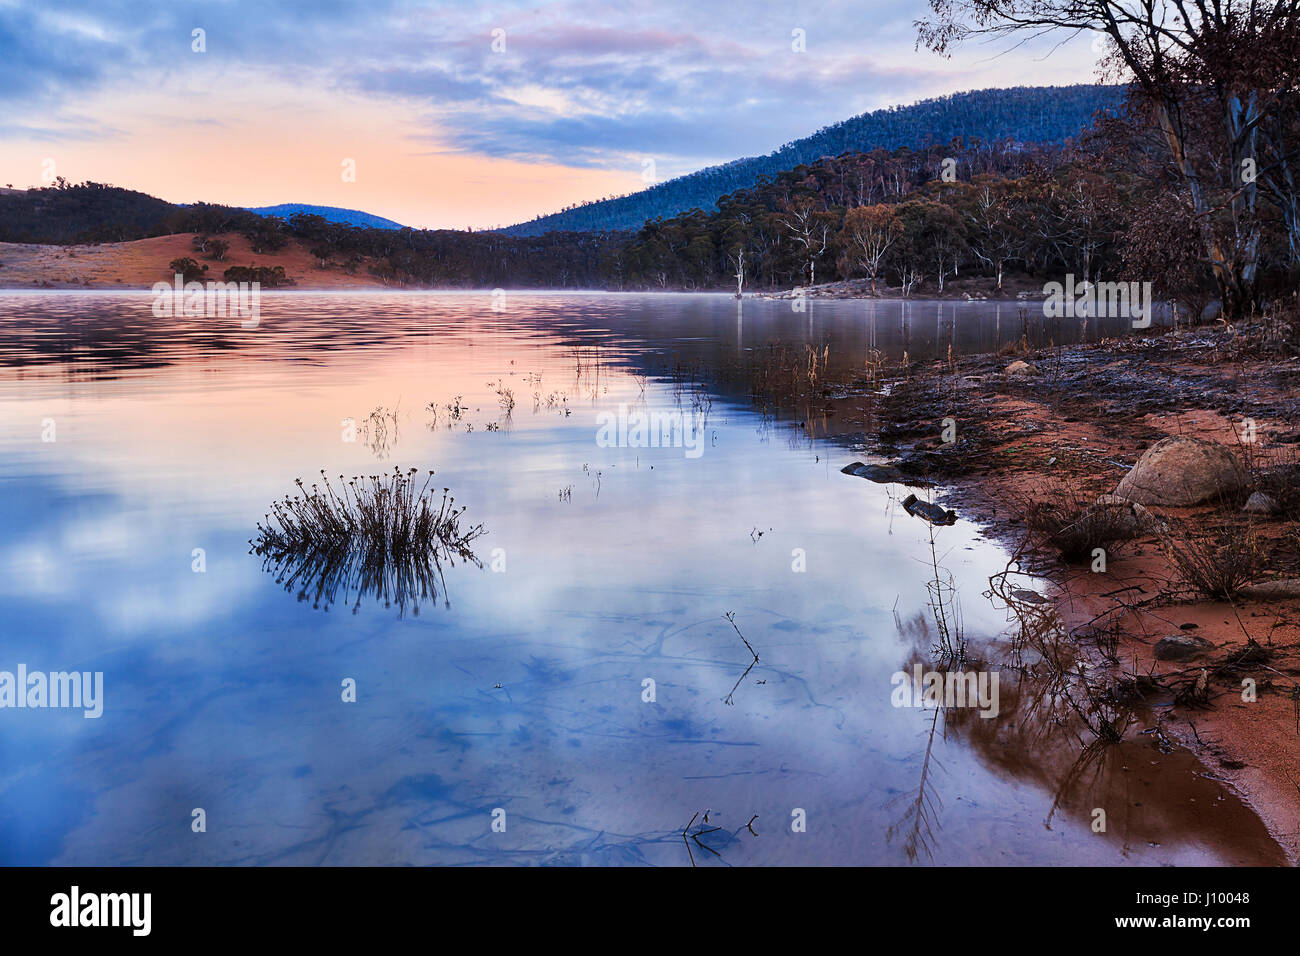 Pink sunrise over hills change around Jindabyne lake in Snowy mountains national park of Australia. Rising sun reflects - Stock Image